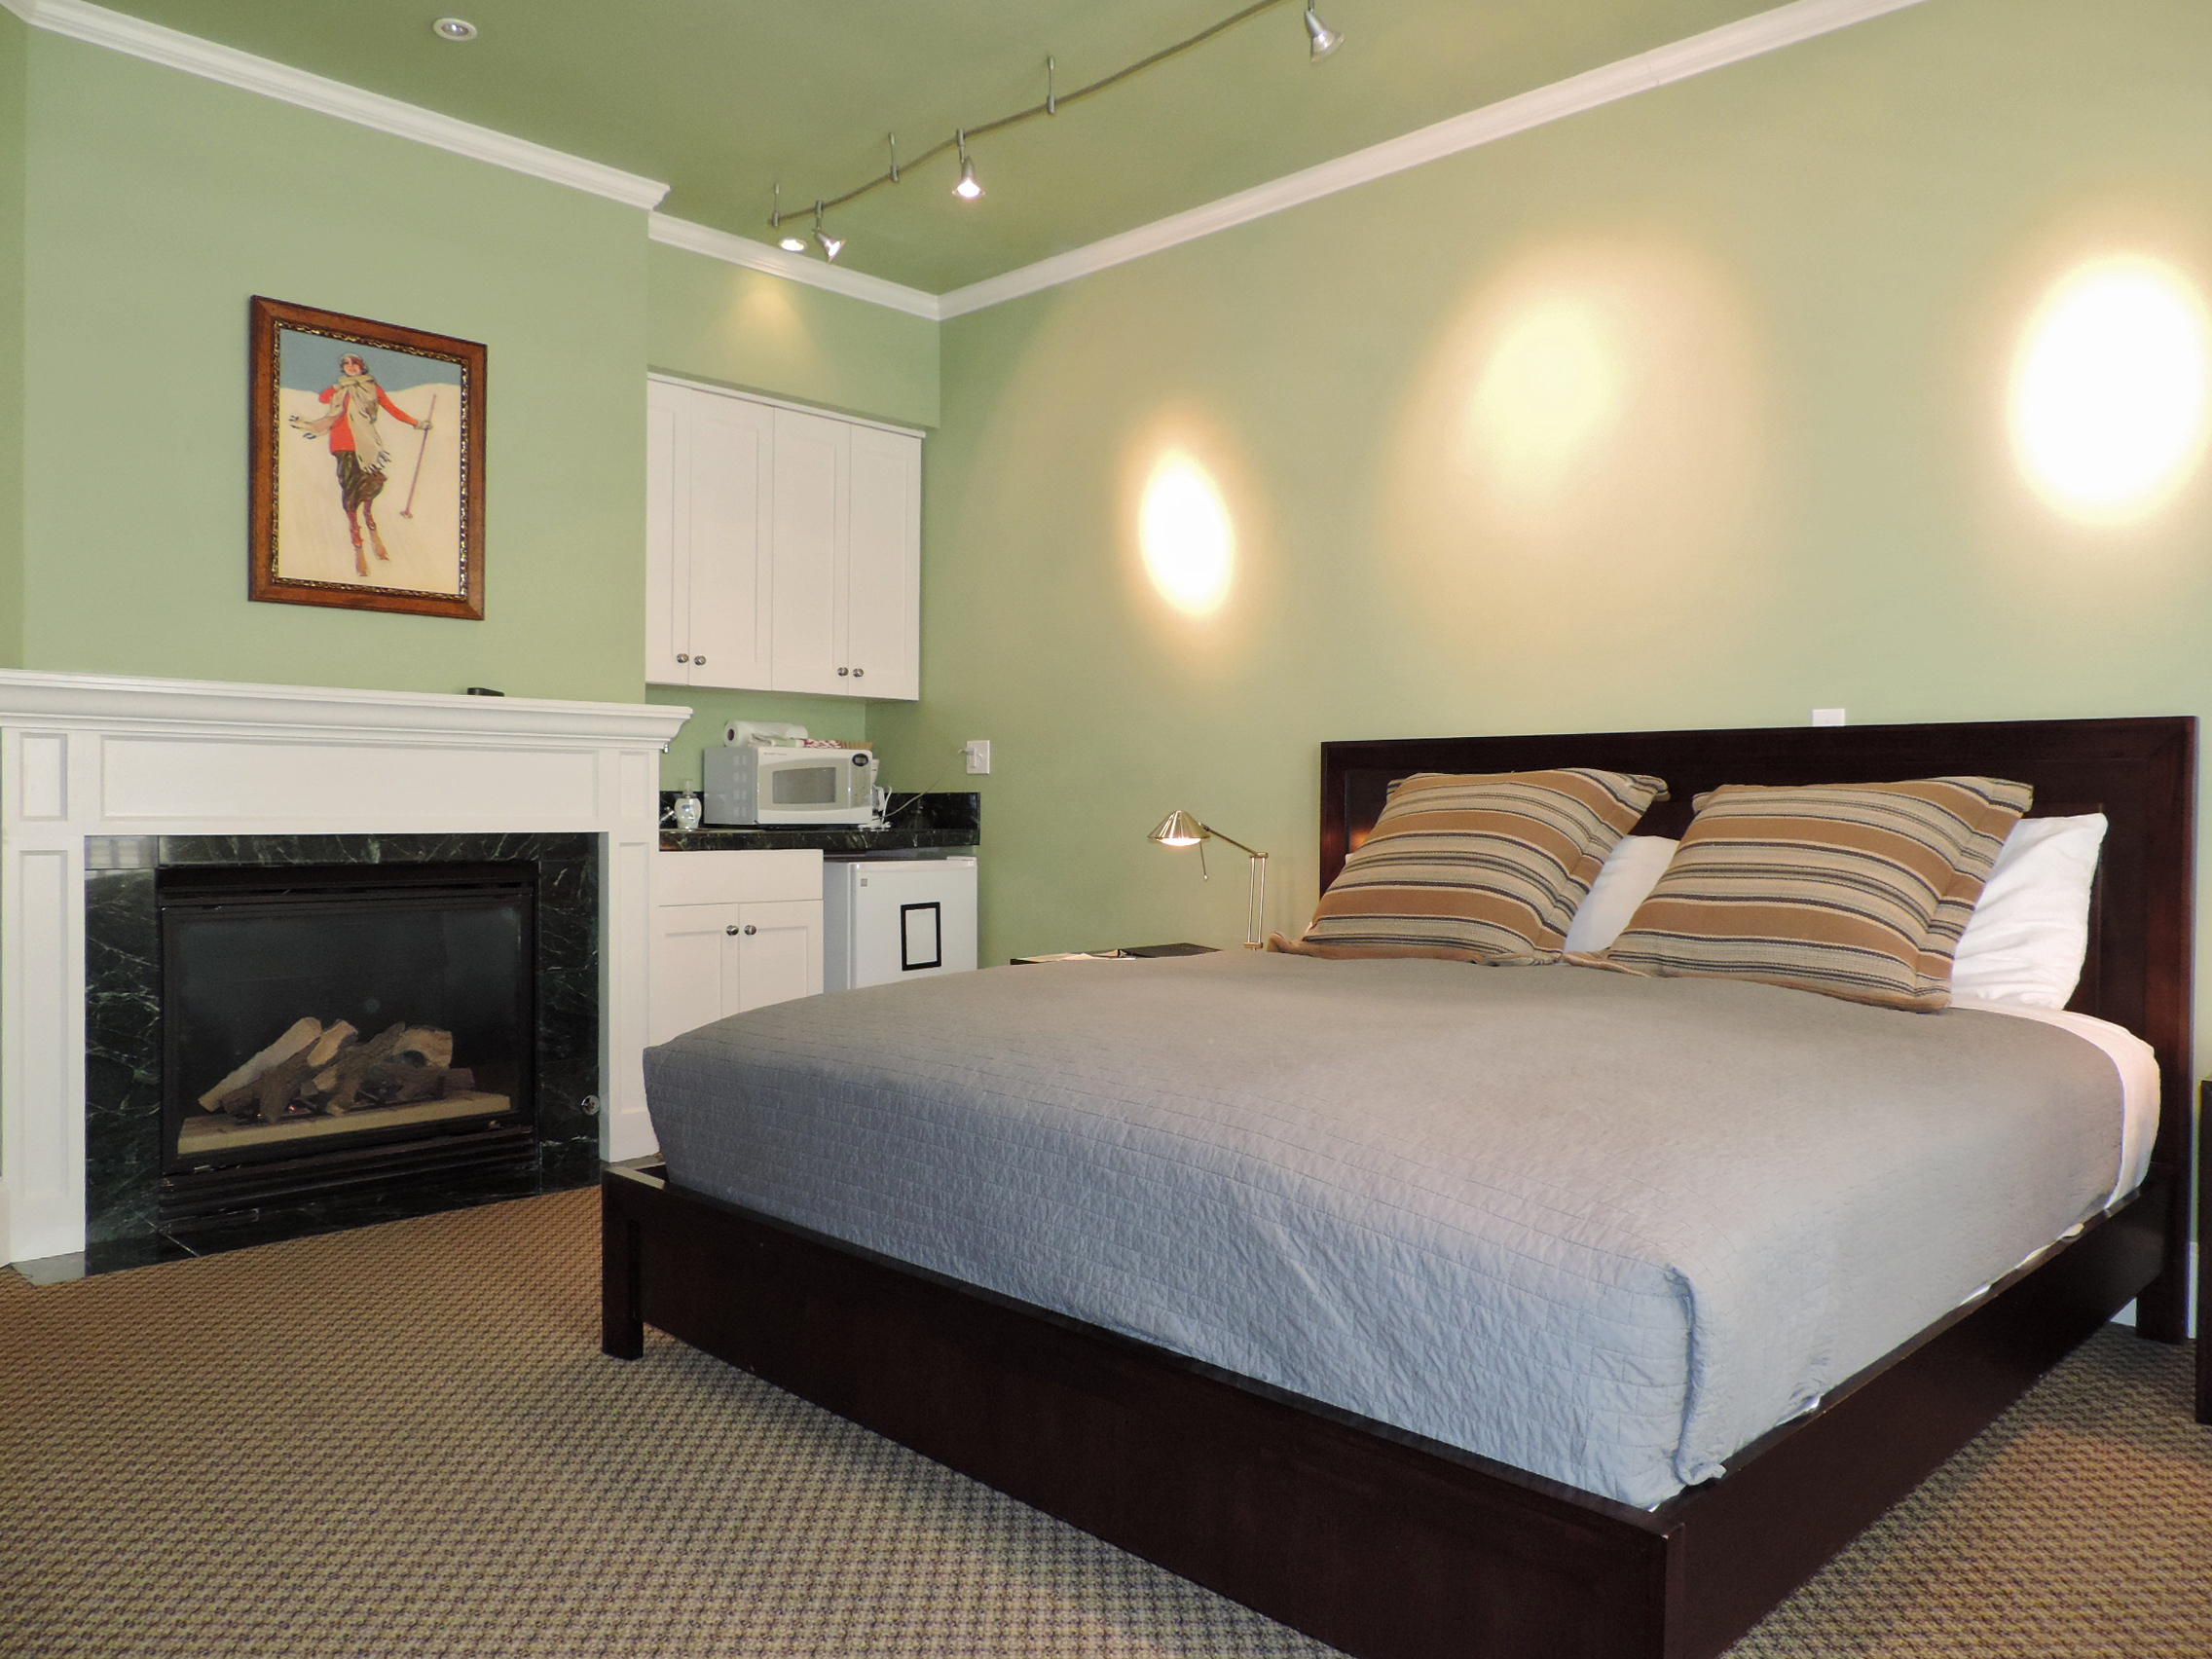 Montana Placer Inn - Room 2 - King Bed and Private Bathroom